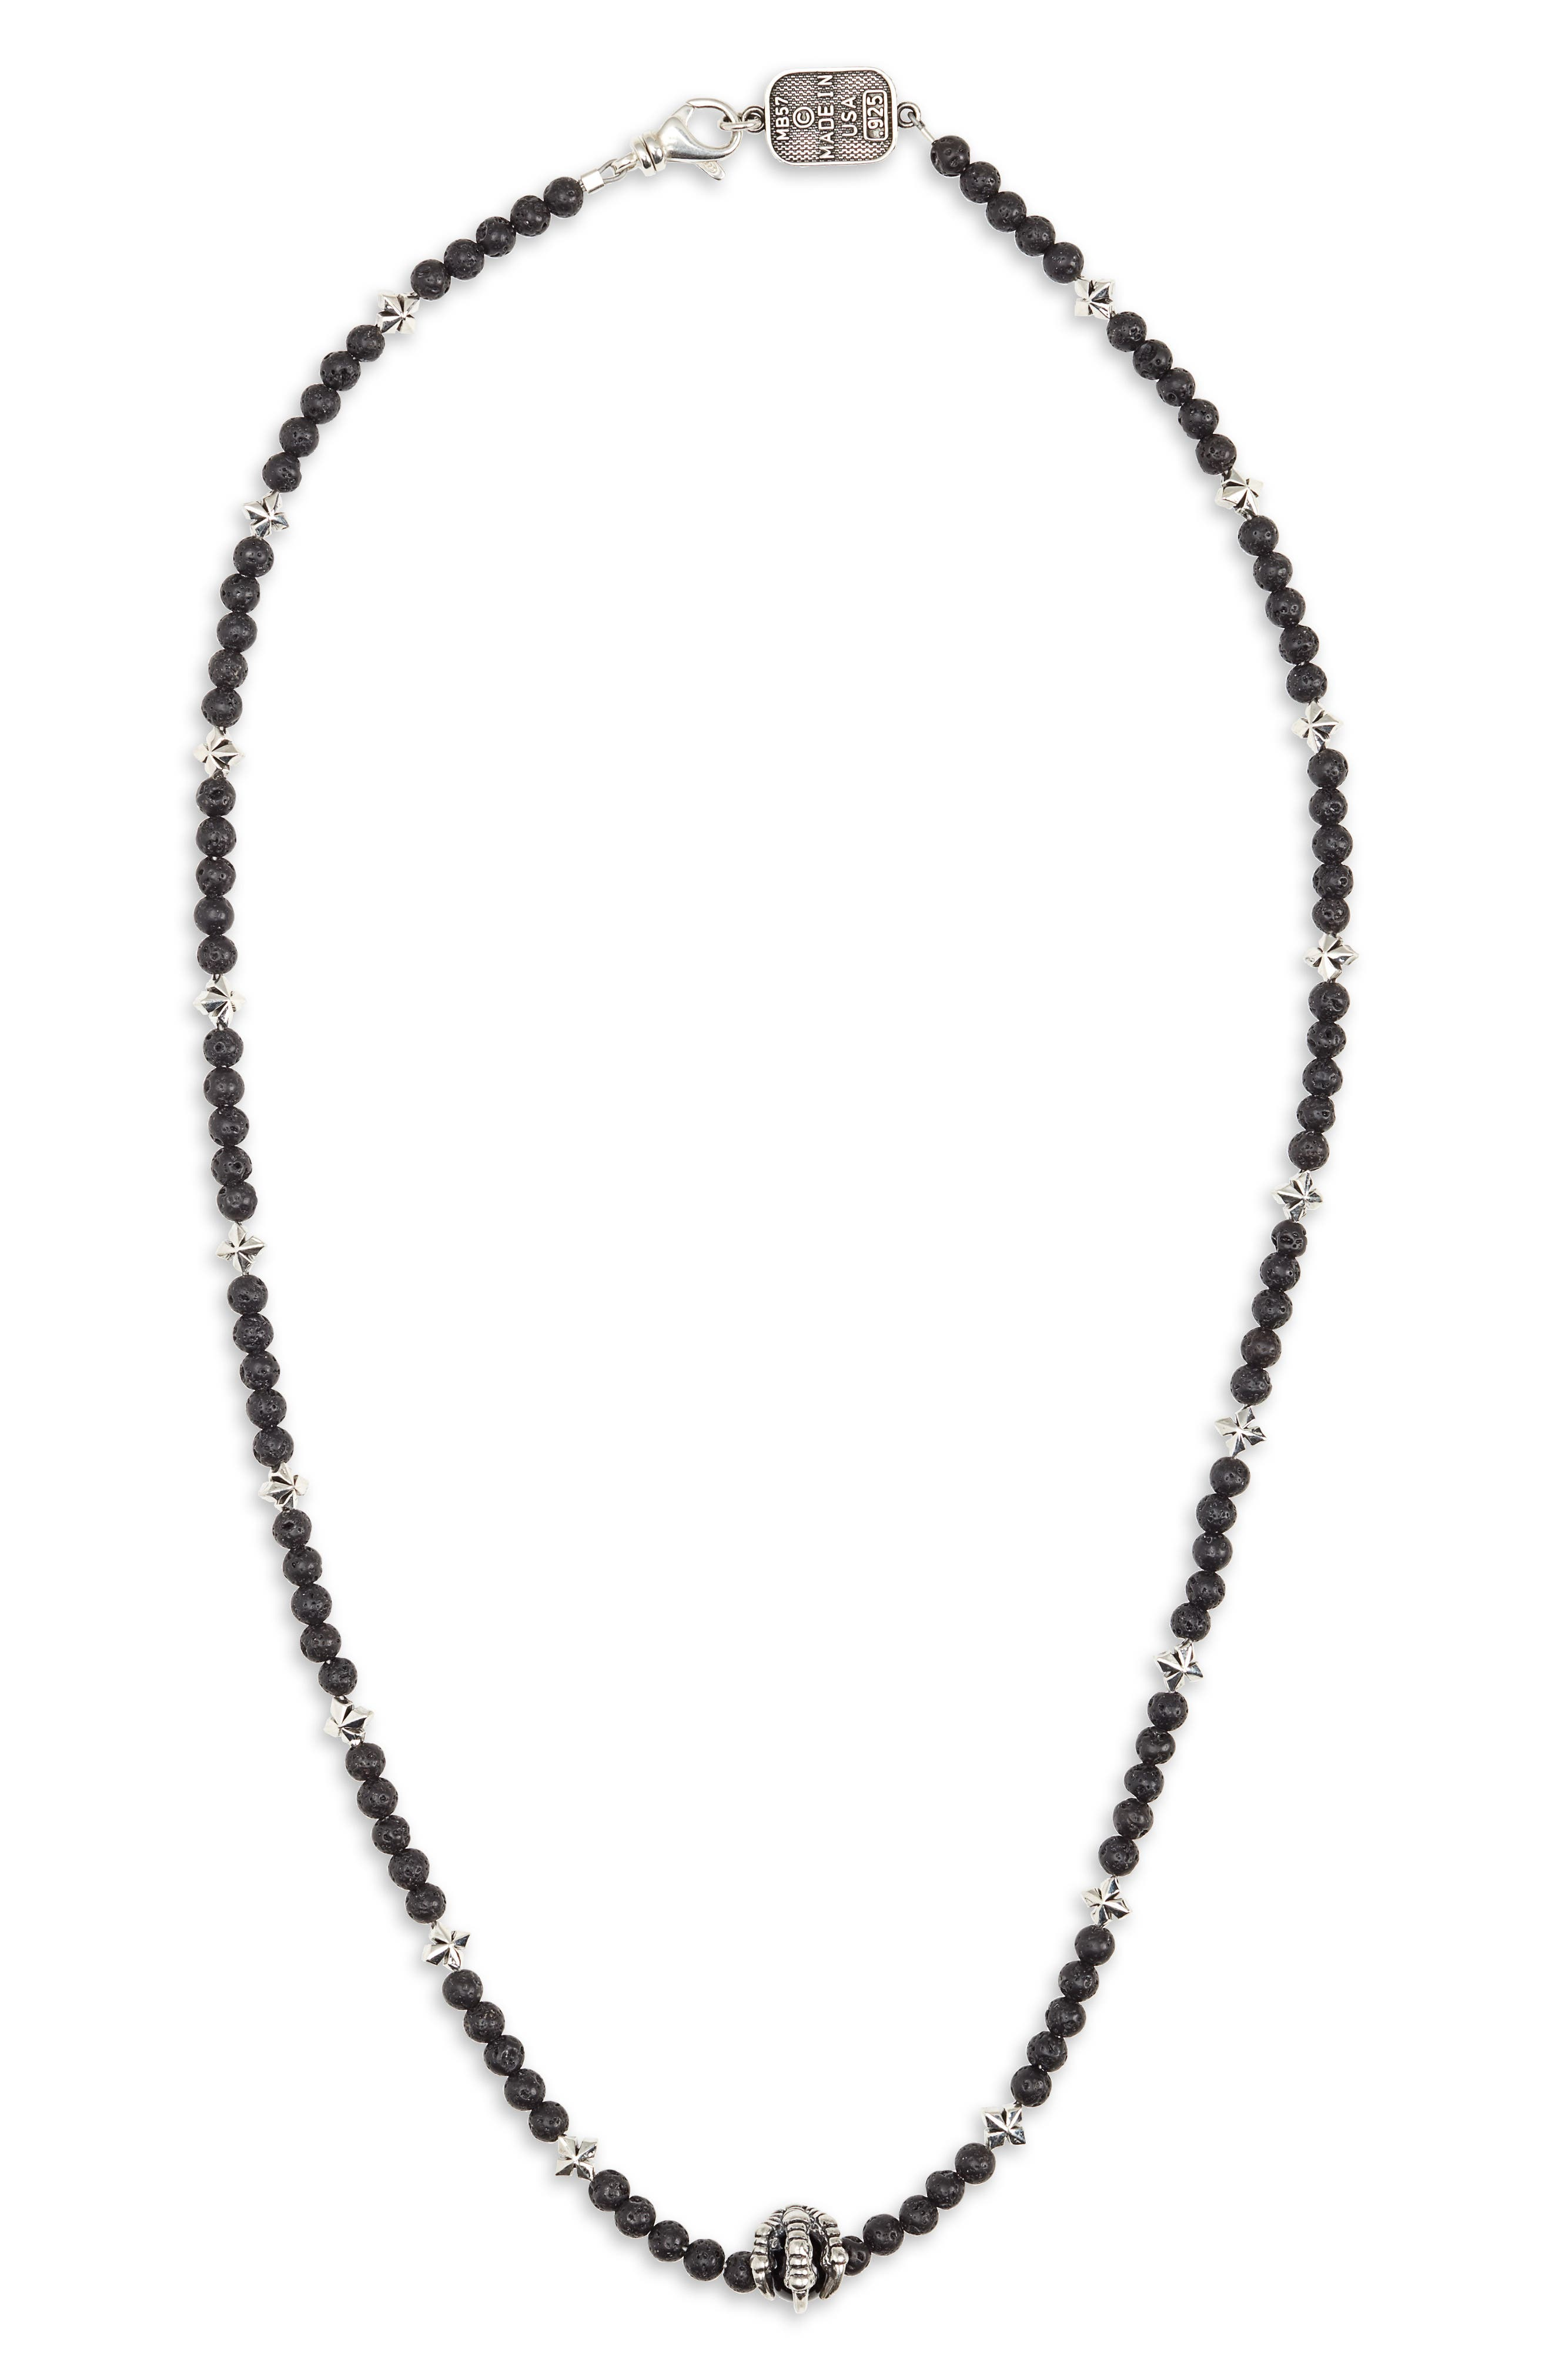 KING BABY Lava Rock & Onyx Bead Necklace in Silver/ Black